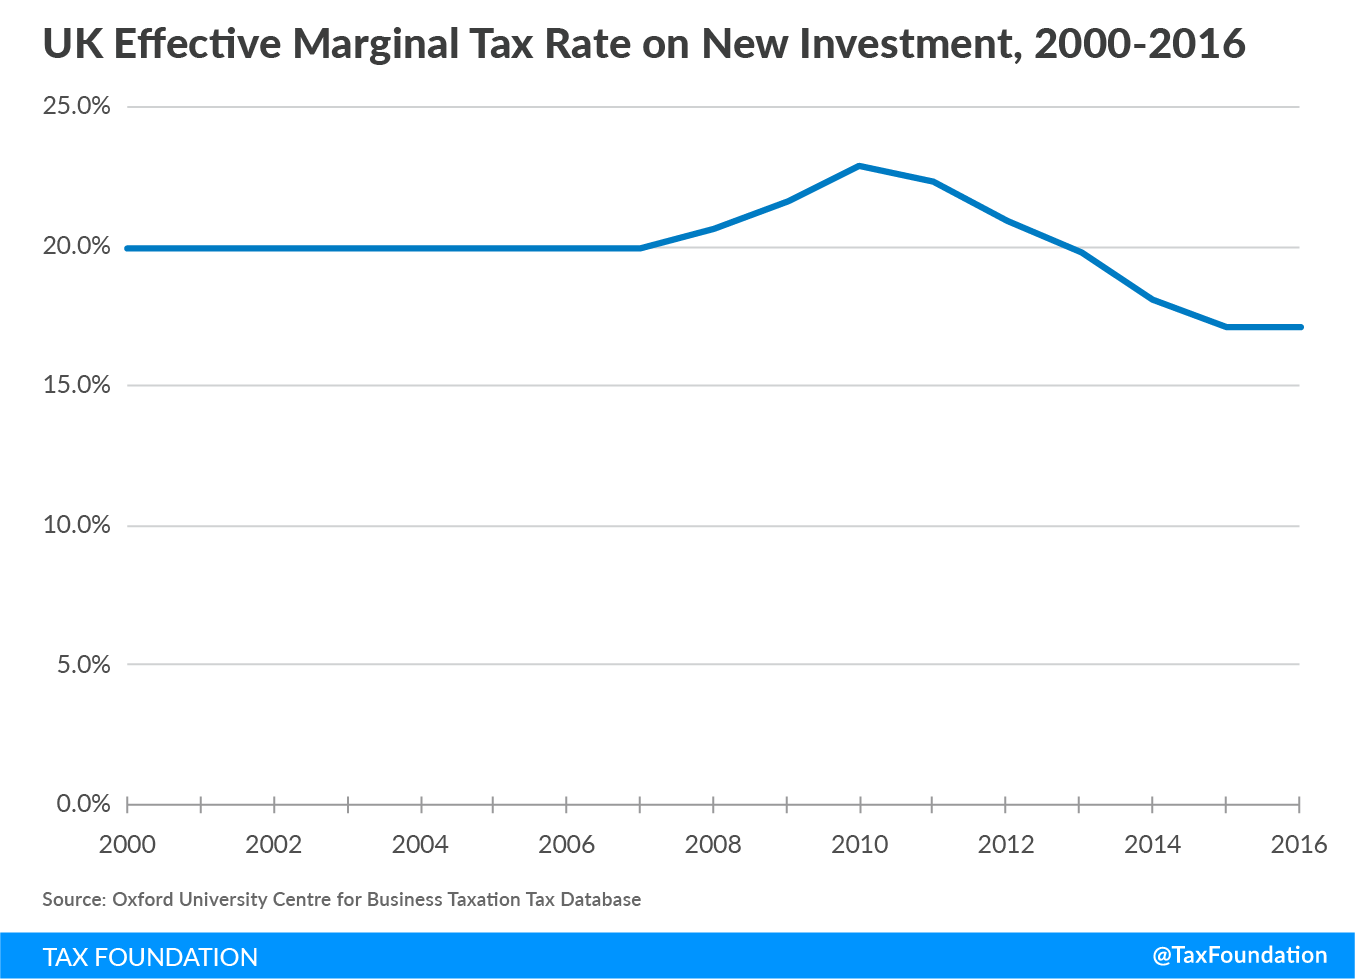 UK Effective Marginal Tax Rate on New Investment, 2000-2016